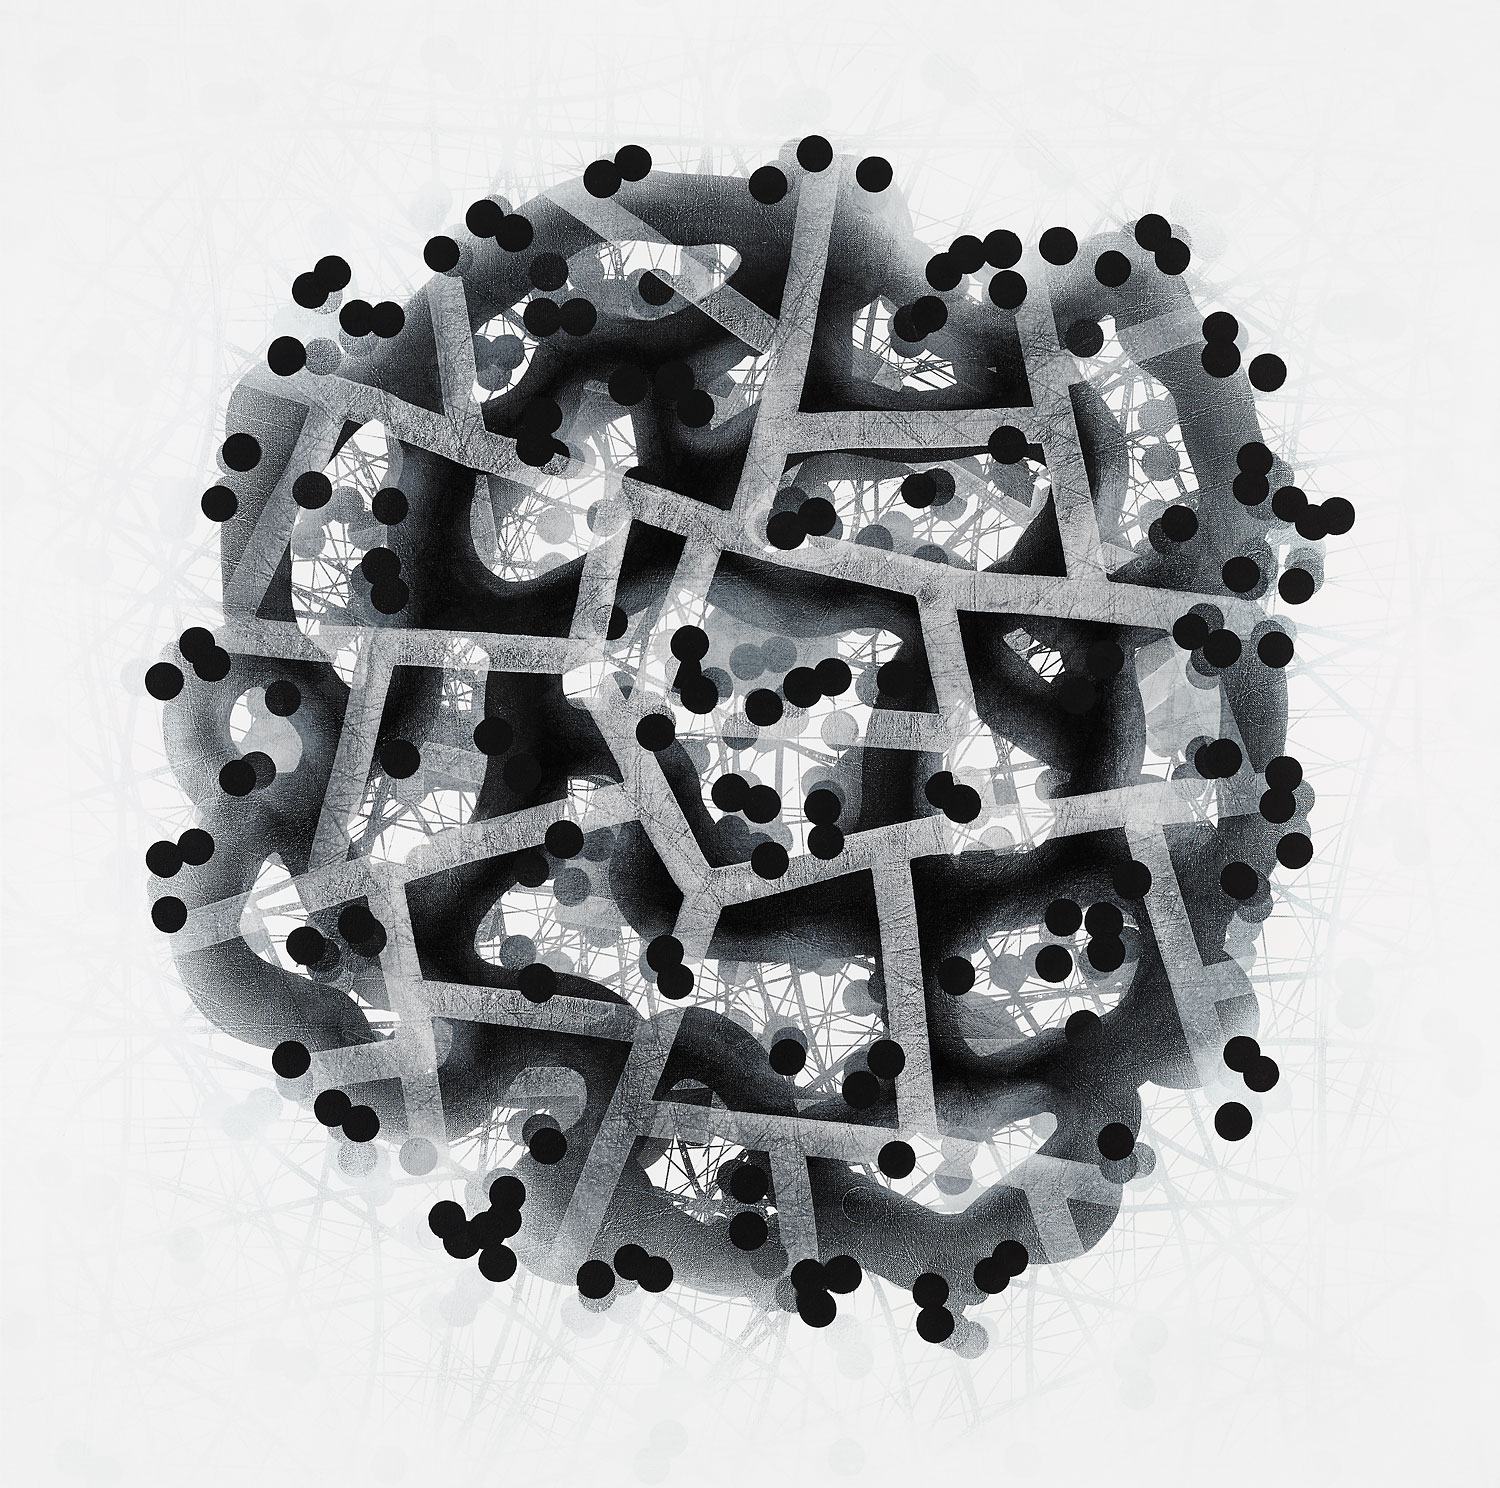 Michelle Concepción, Black & White Clusters 2, acrylic on canvas, 150 x 150 cm, 2016